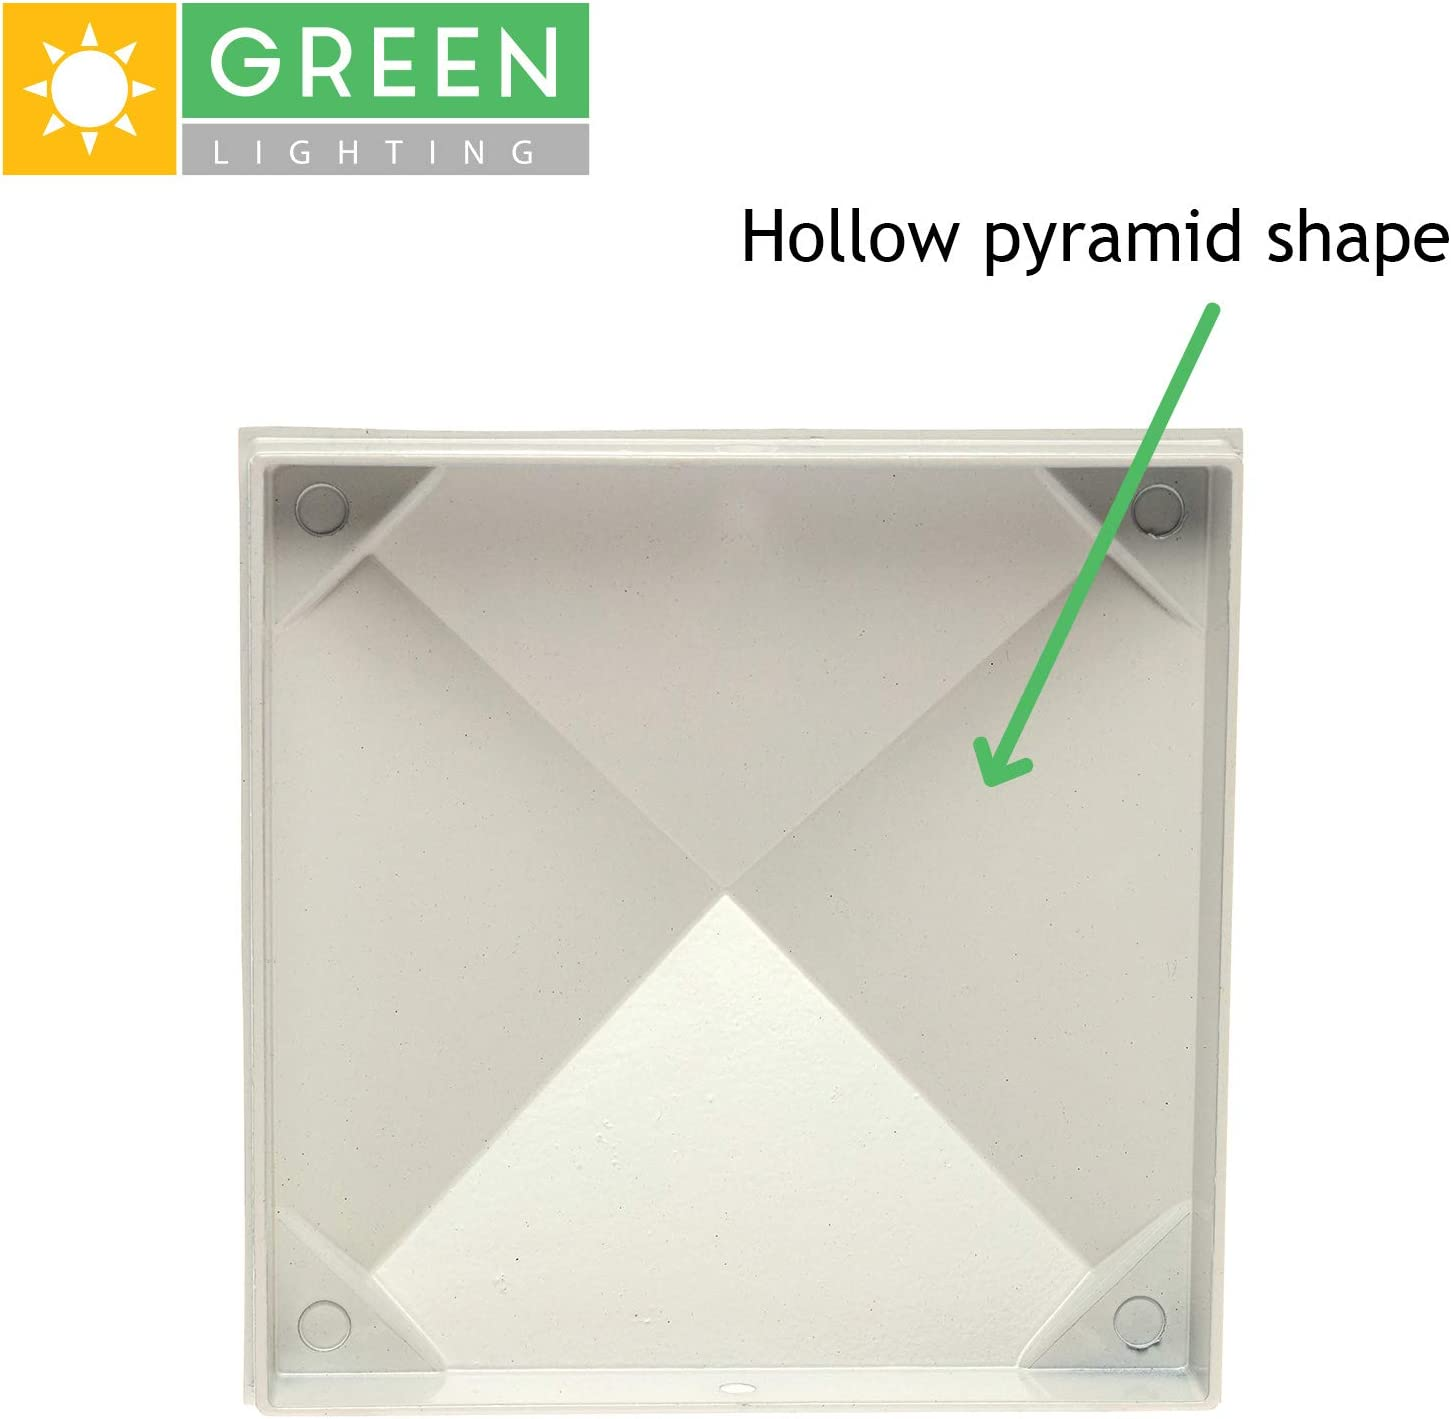 White, 4 Pack GreenLighting 6 in x 6 in Aluminum Pyramid Post Cap Cover for Nominal Wood Posts